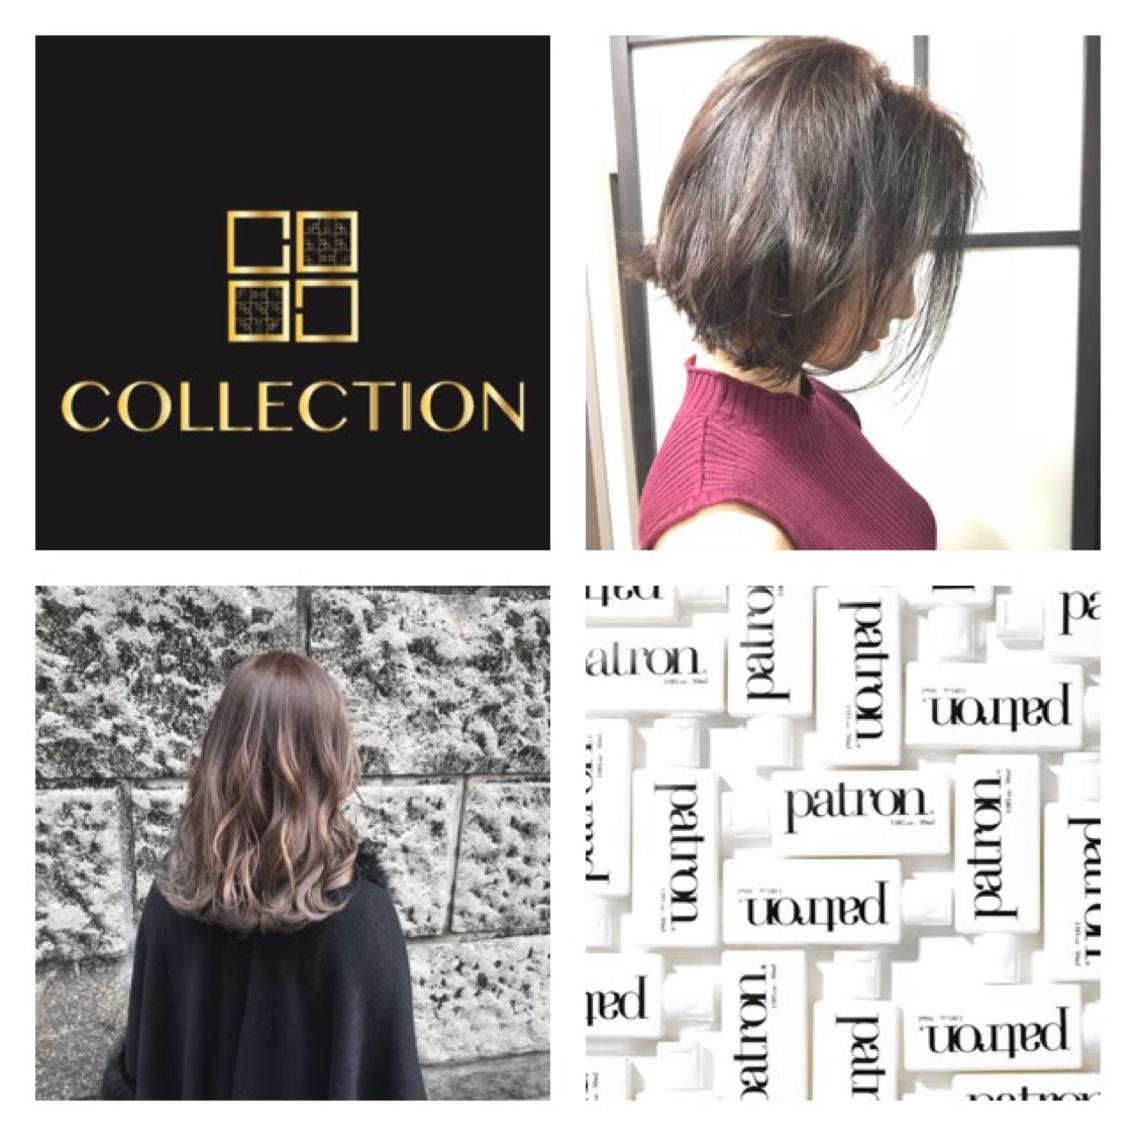 COLLECTION所属・COLLECTION 南船場の掲載